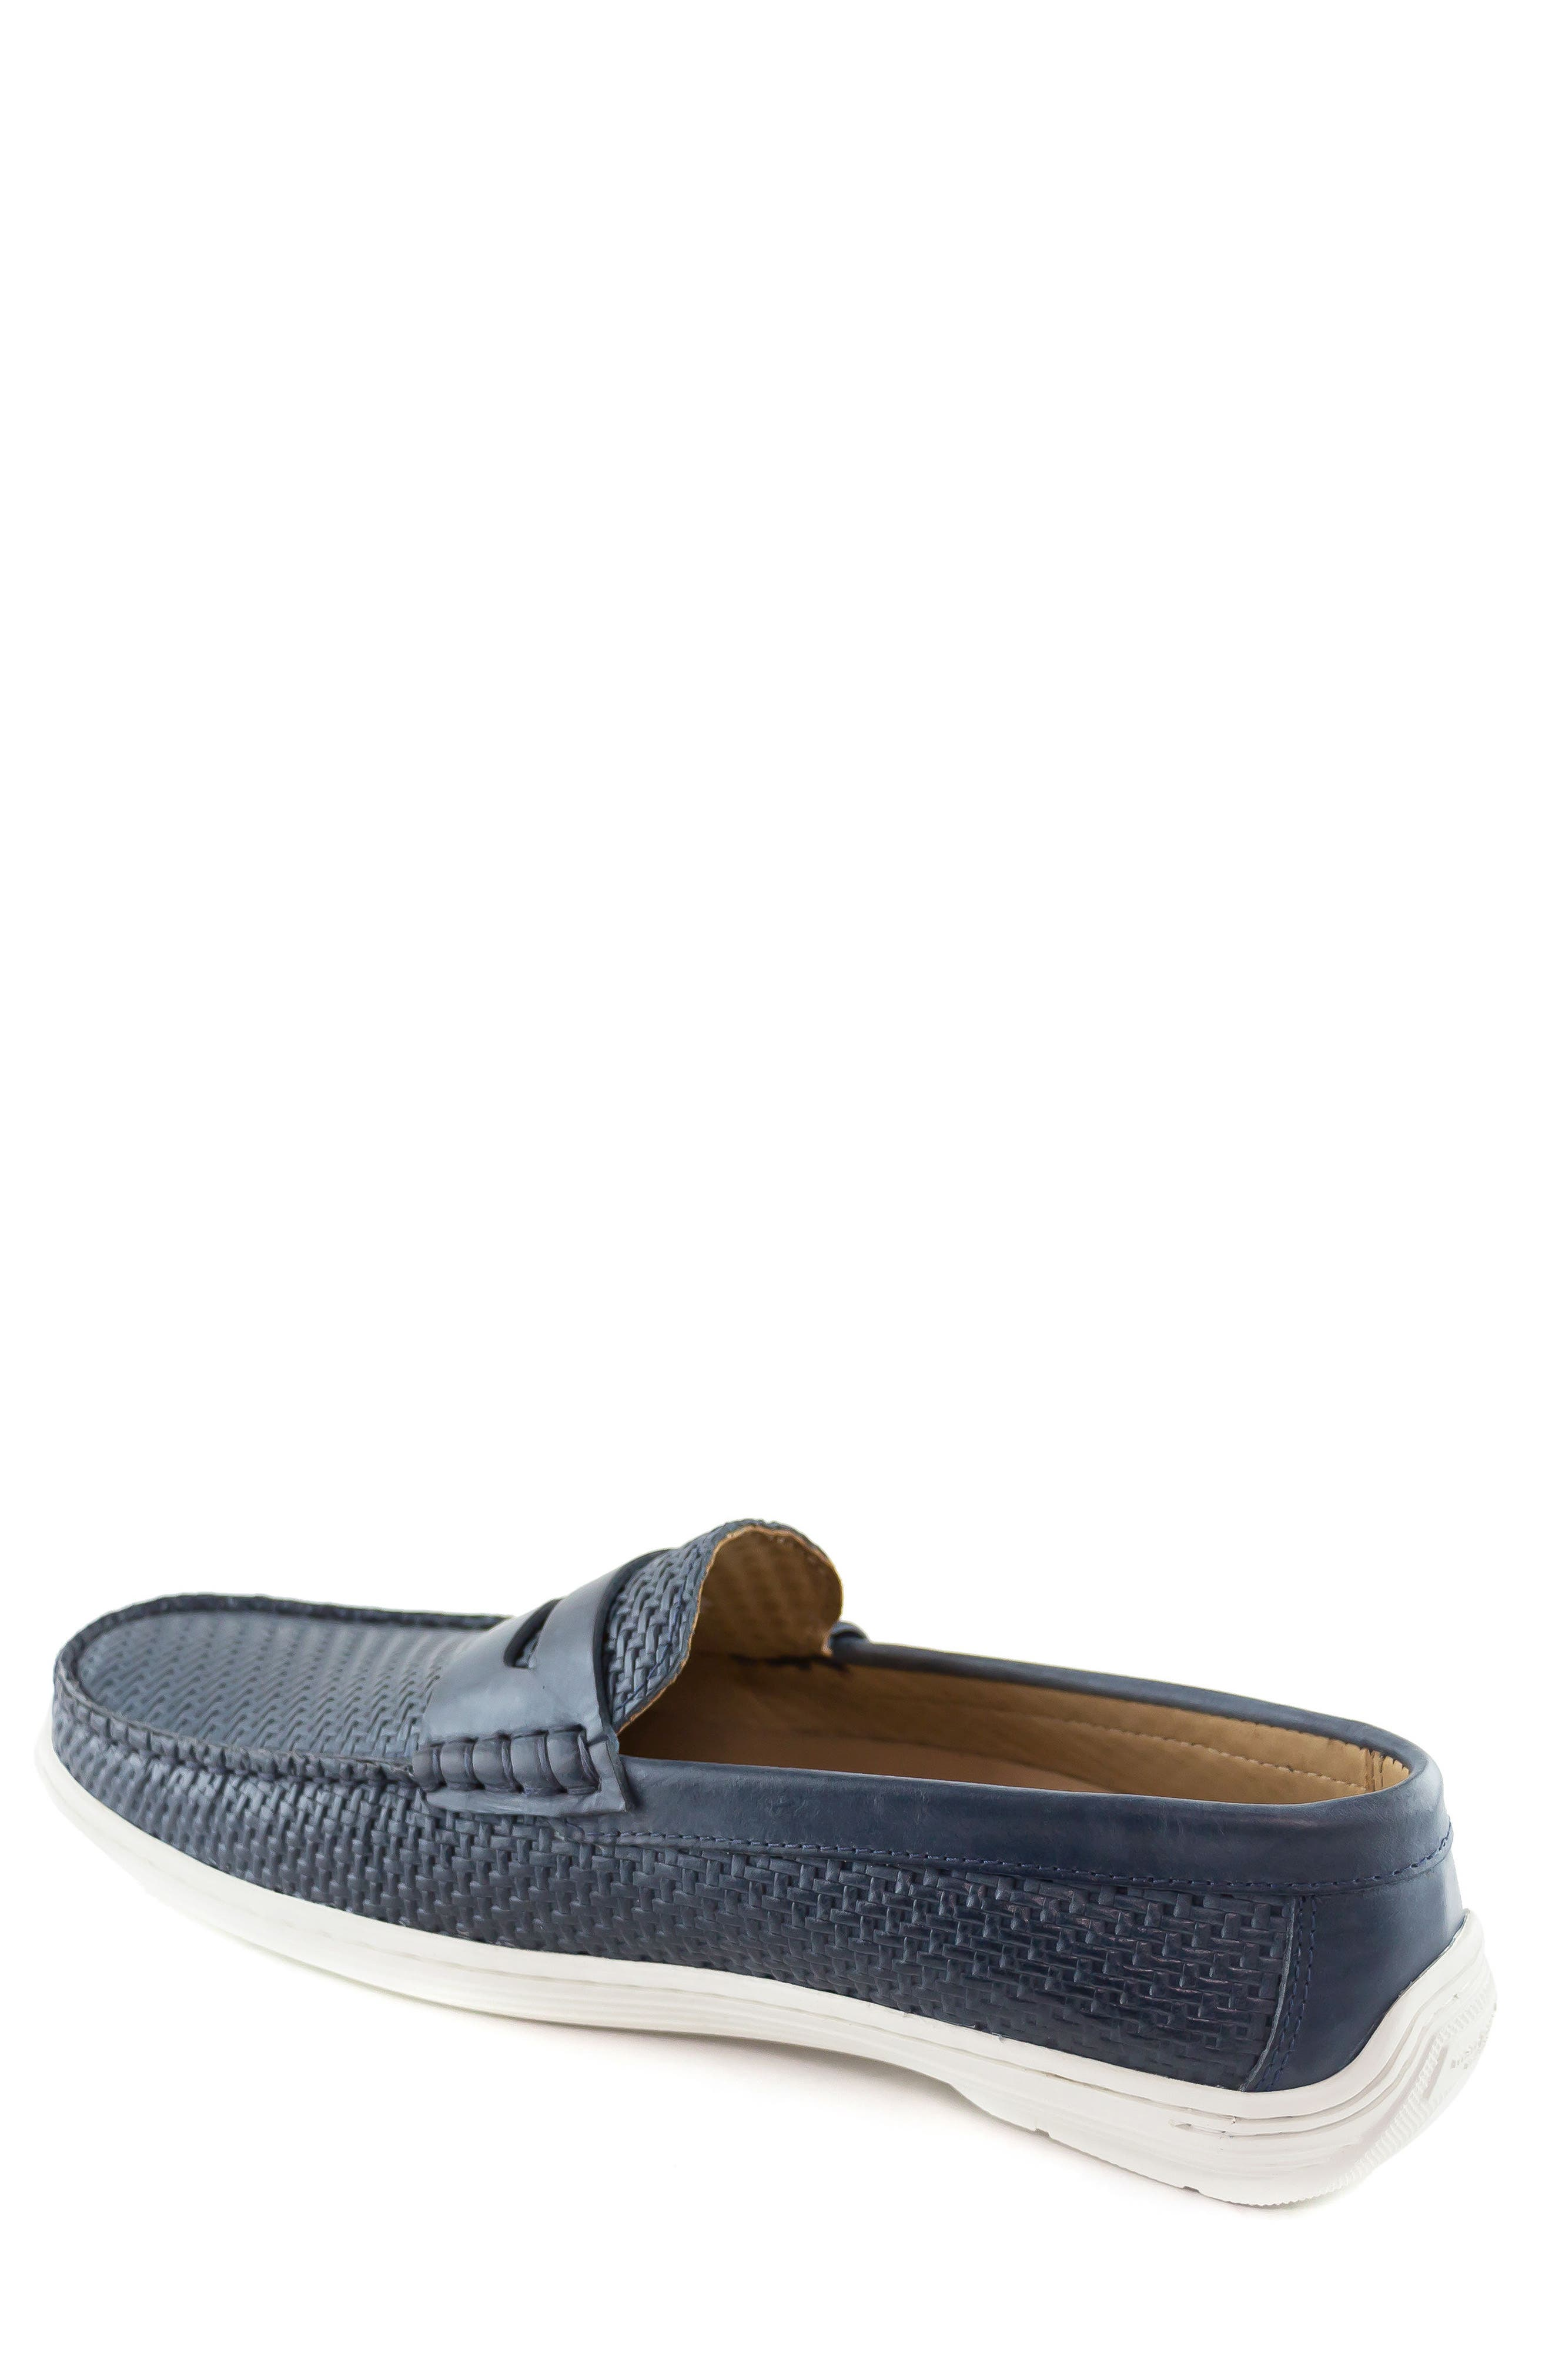 Atlantic Penny Loafer,                             Alternate thumbnail 13, color,